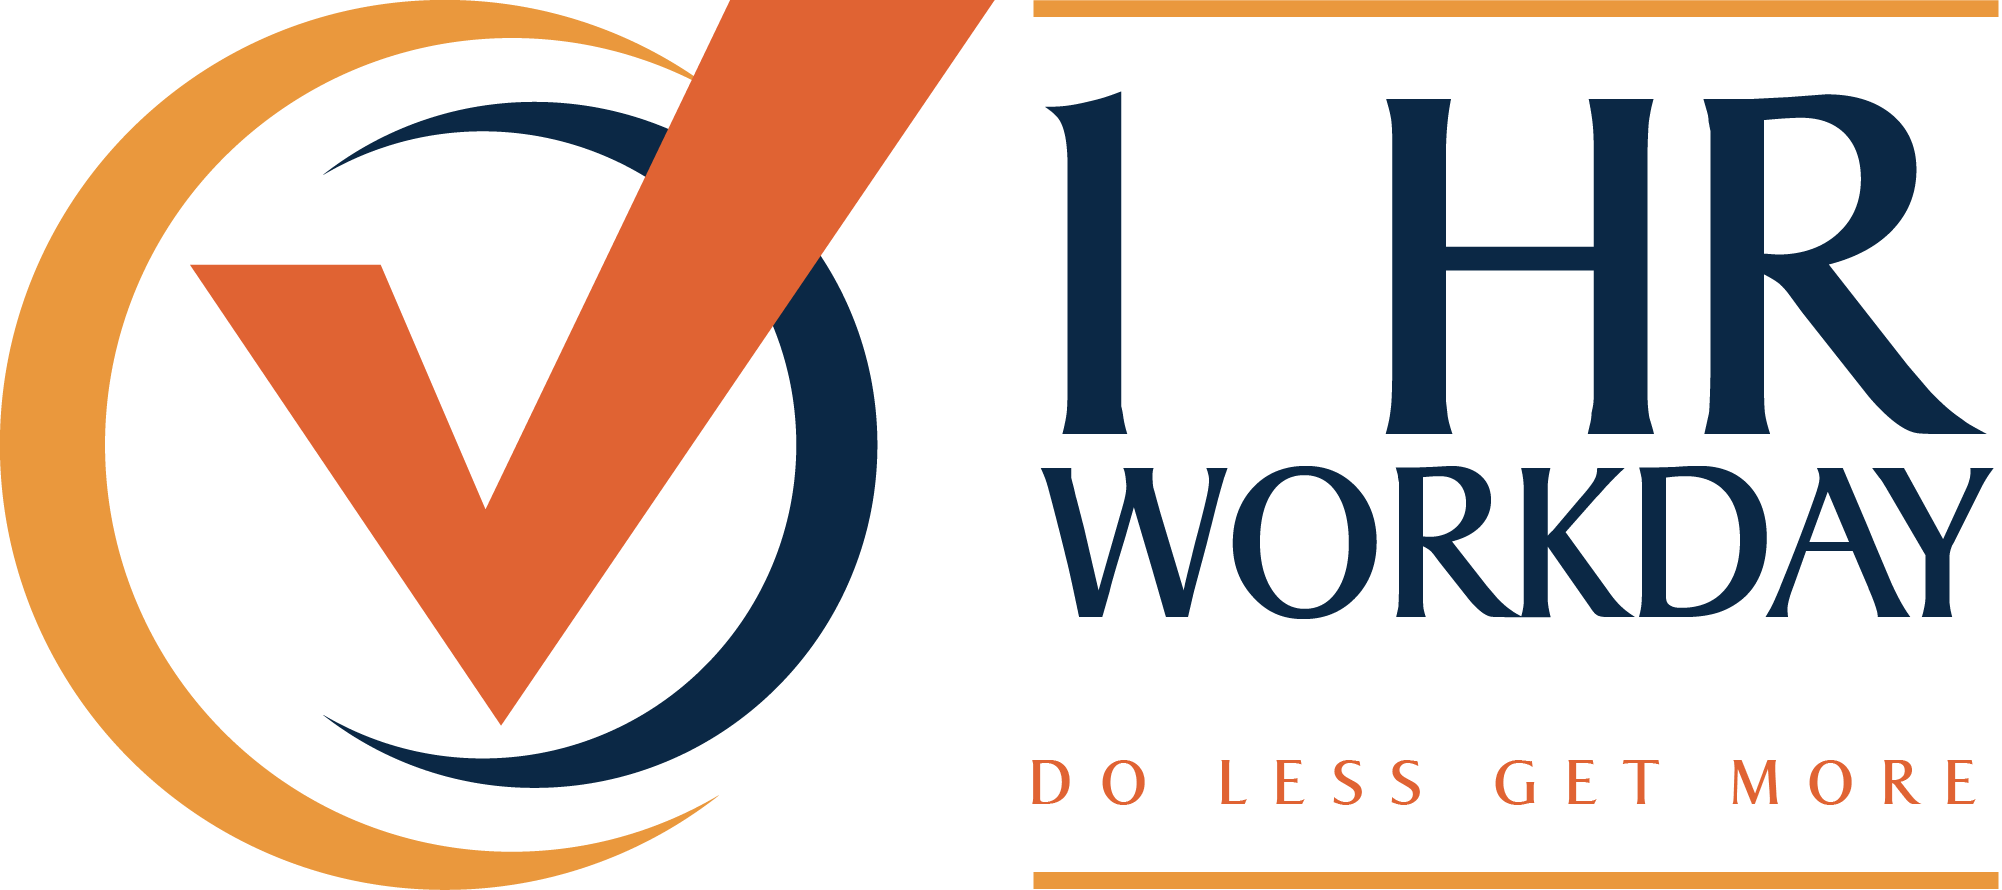 1 Hr Workday Review - Should You get this software? All Details, Demo, Discount, OTO And ($2K Bonus), Make $5K A Month Working 1 Hour Per Day? 1